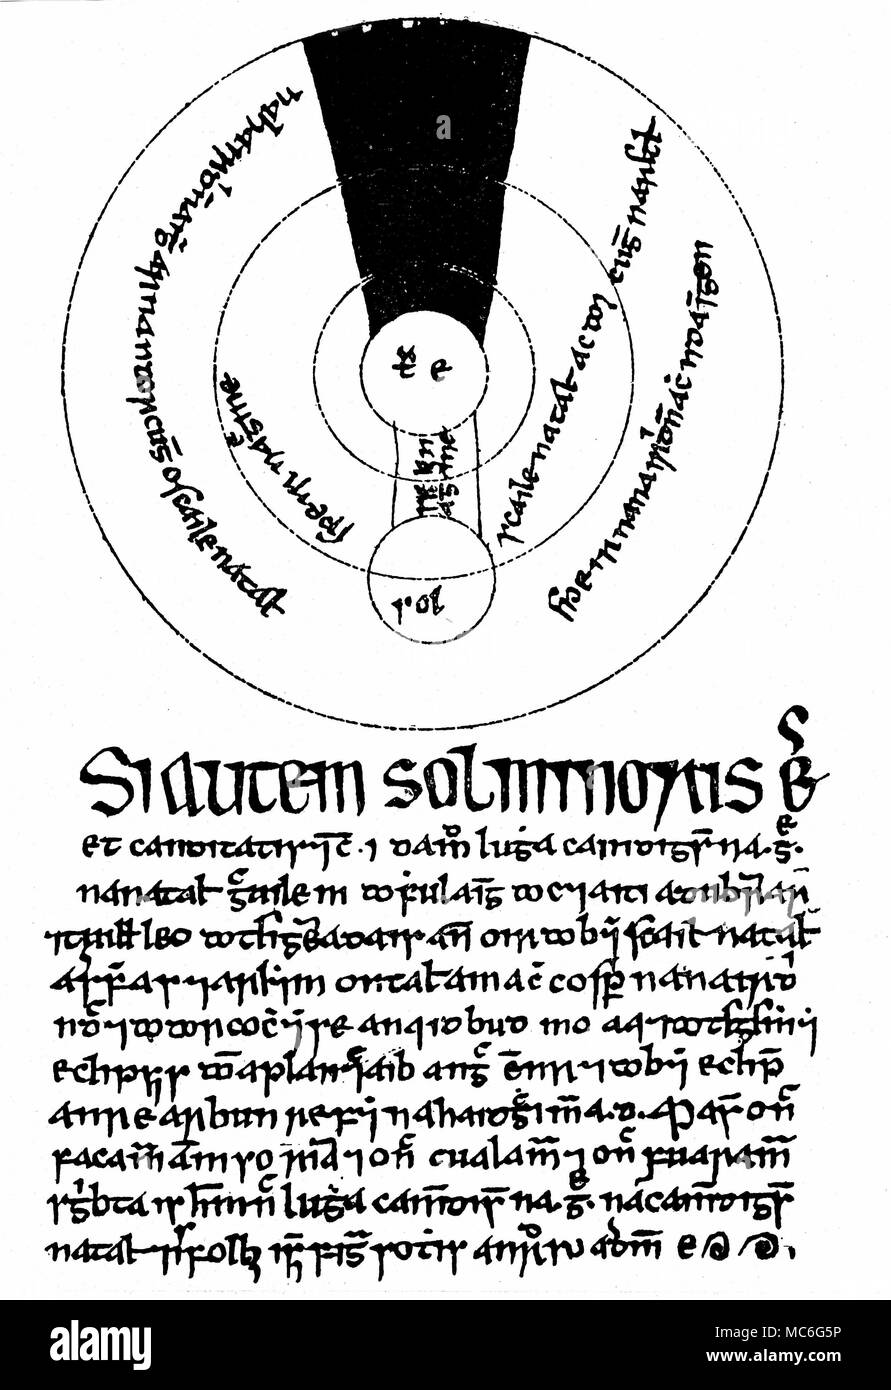 hight resolution of astrology eclipse an irish astronomical diagram of circa 1400 ad illustrating the theory of eclipses being caused by the shadow of the earth